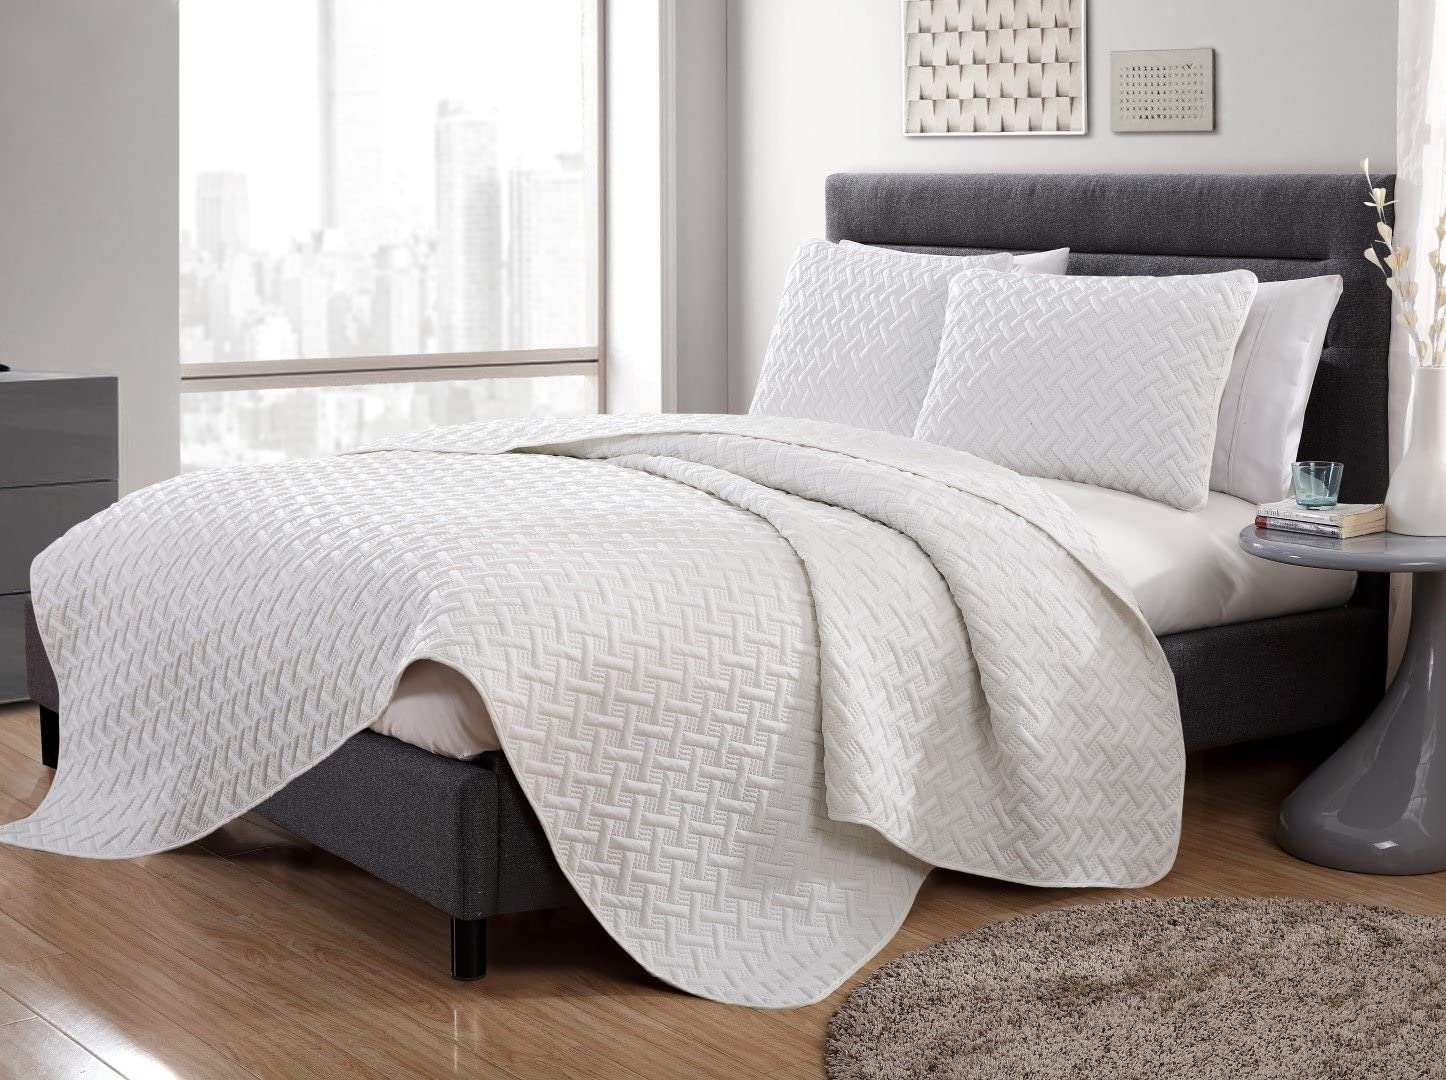 VCNY Home Nina Collection Quilt Set - Ultra-Soft Reversible Coverlet Bedding - Lightweight, Cool, and Breathable Bedspread, Machine Washable, Twin, White